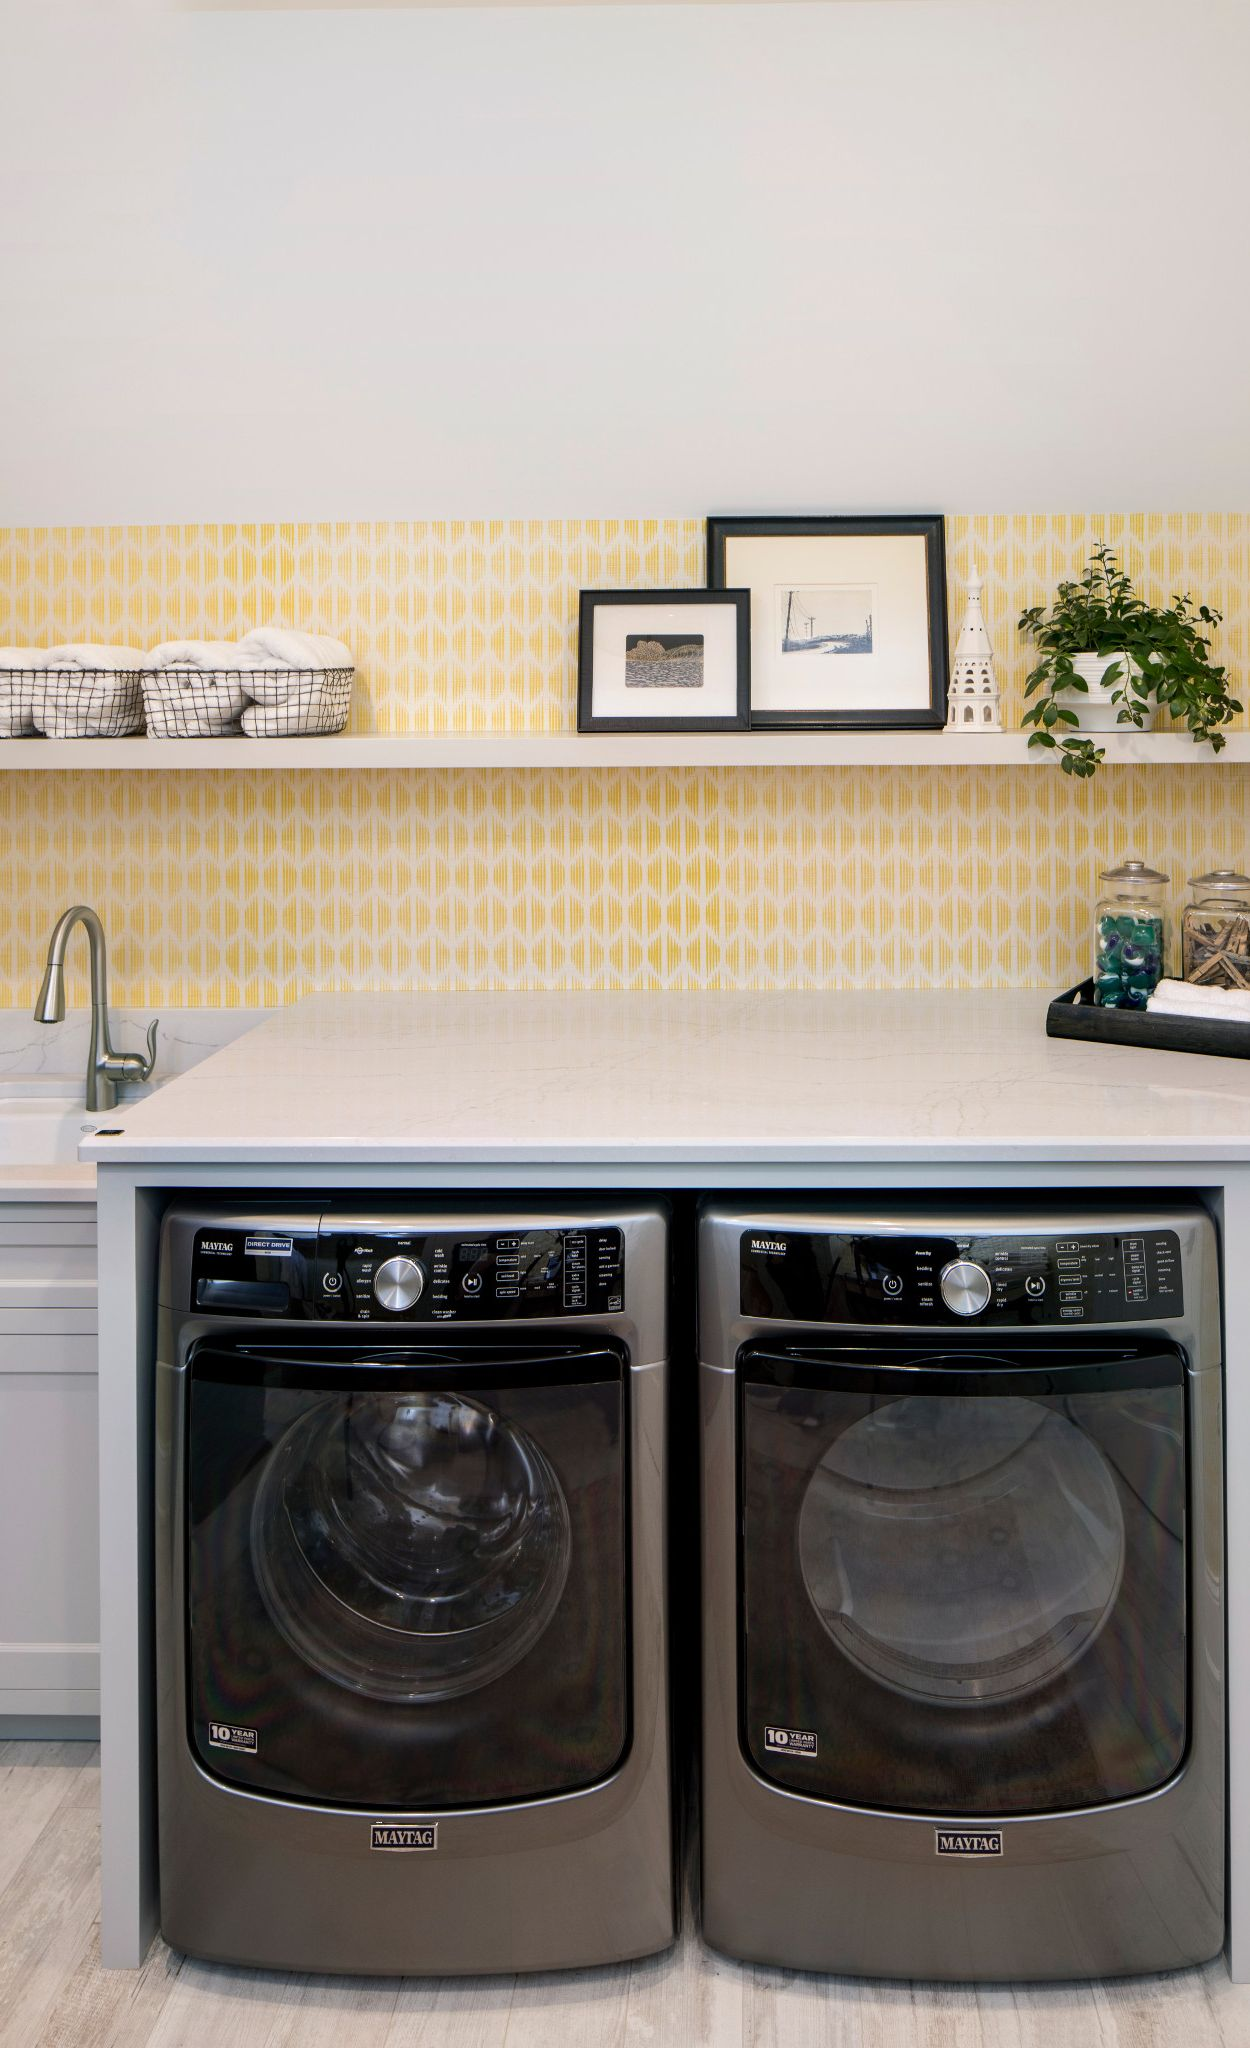 Cambria Ella in a laundry room with yellow wallpaper.